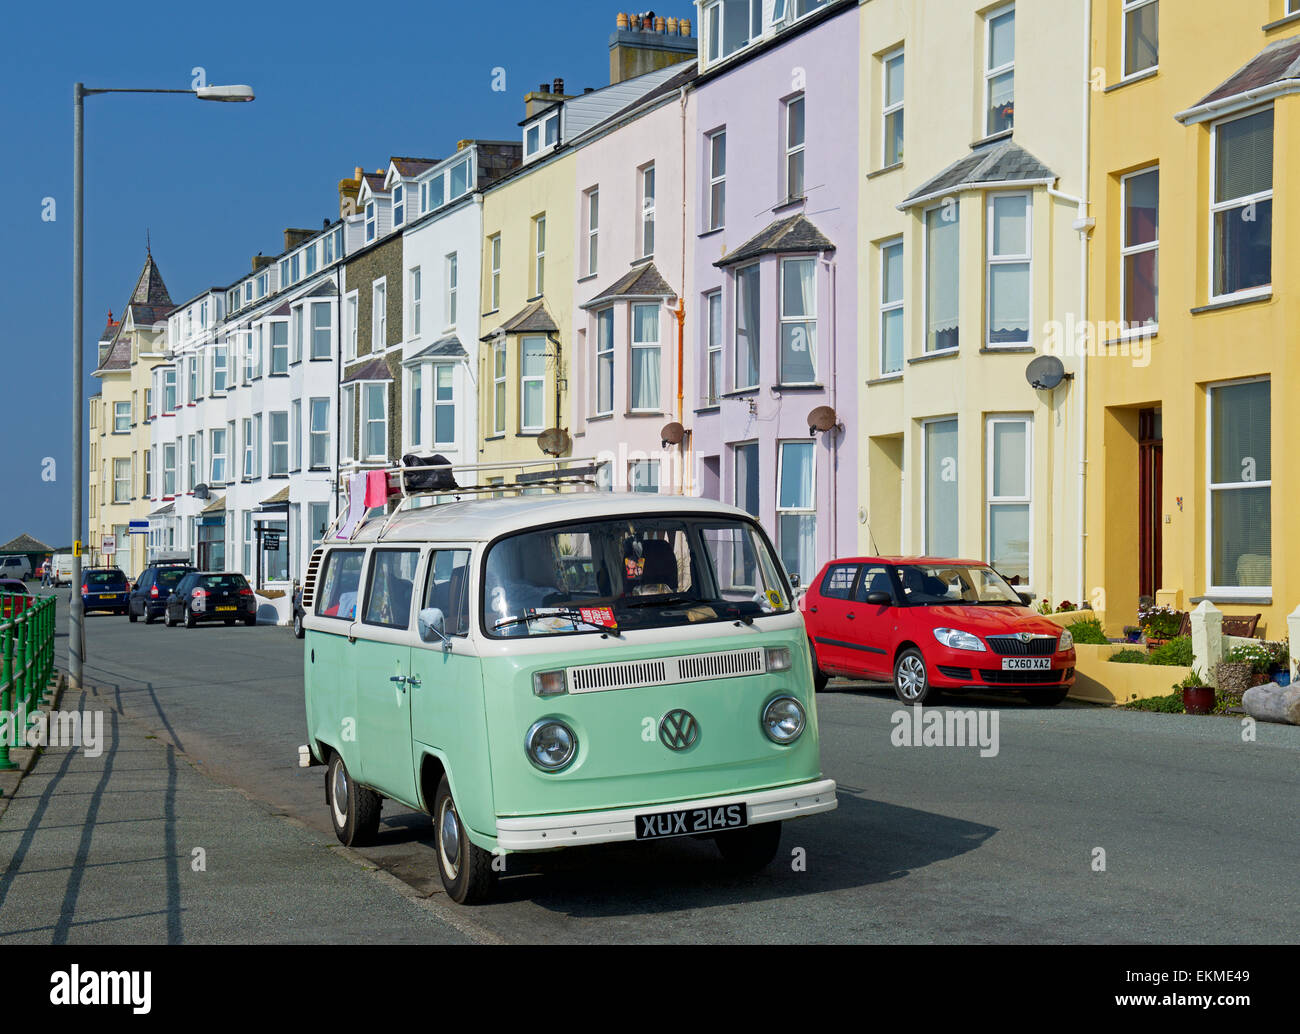 VW campervan parked in front of hotels in Tenby, Pembrokeshire, Wales UK - Stock Image